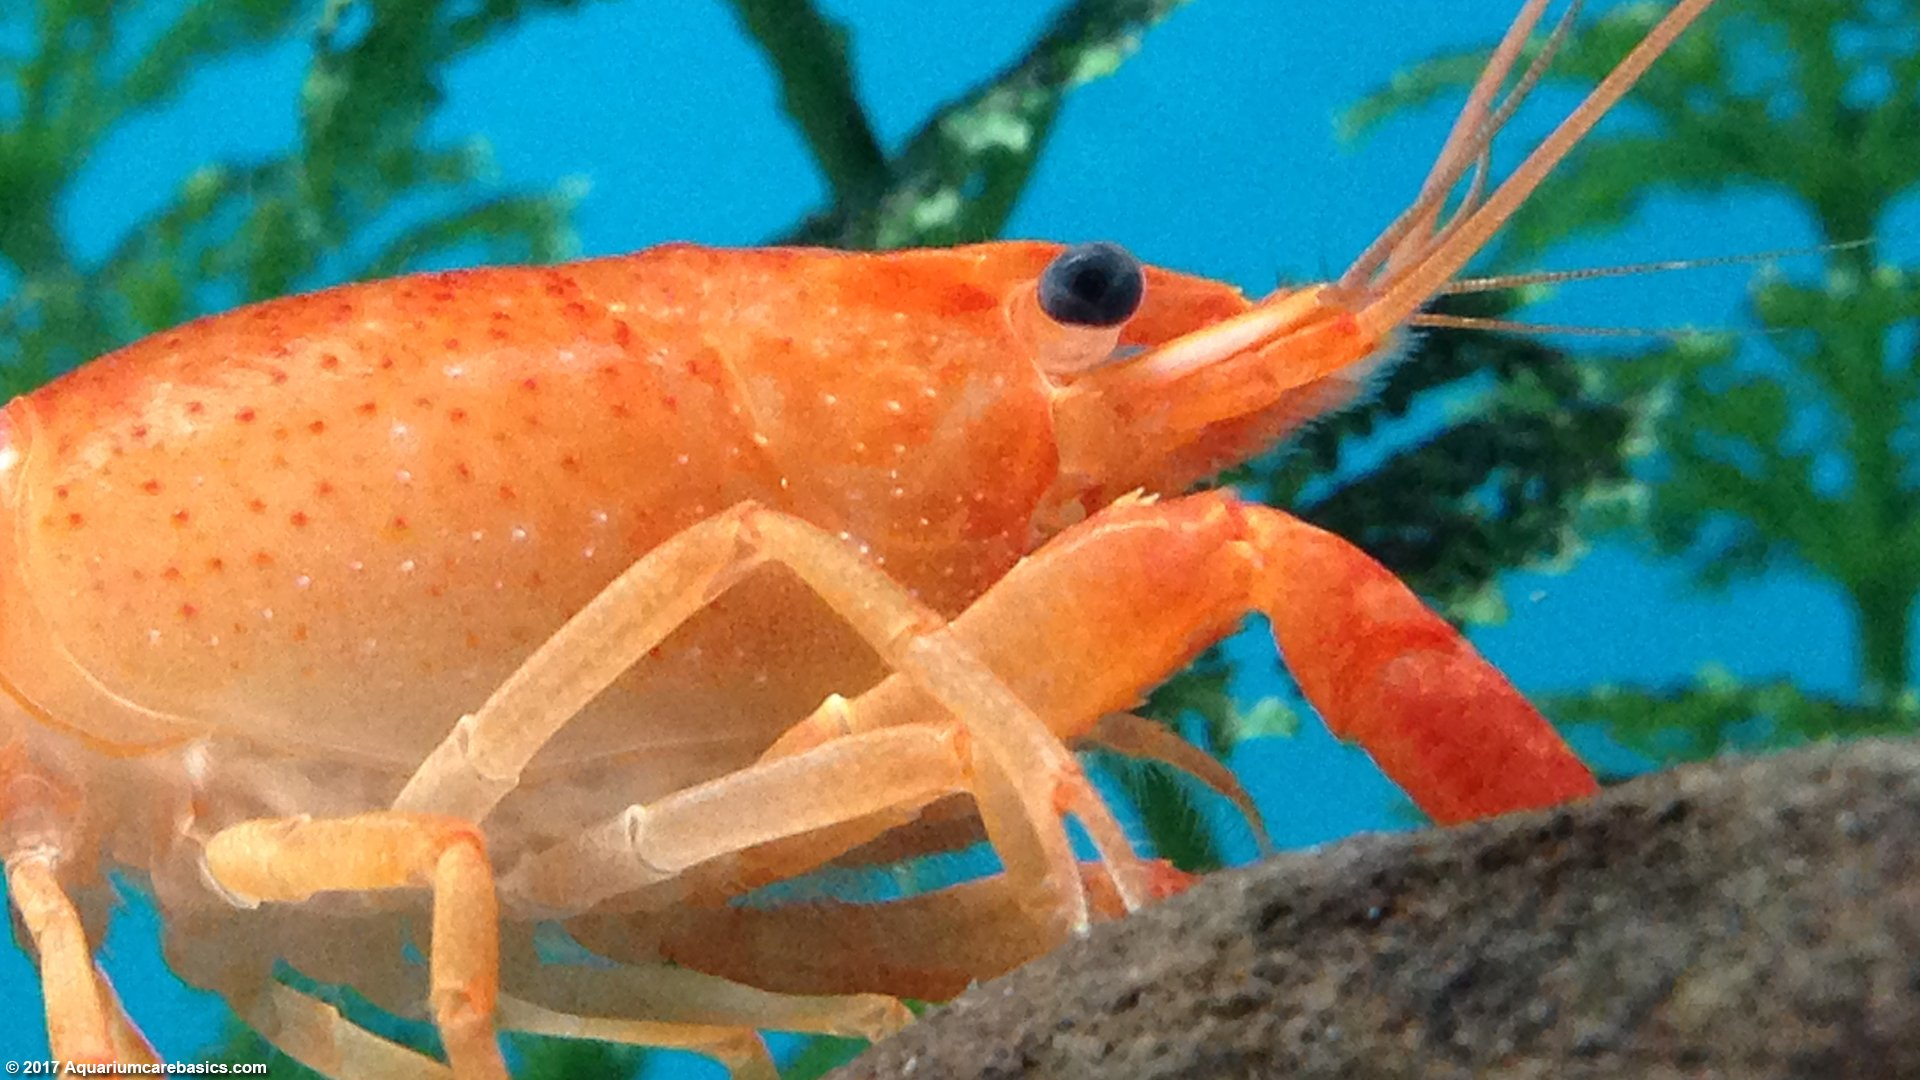 Aquarium Crayfish: Think About A Species Tank With Many ...